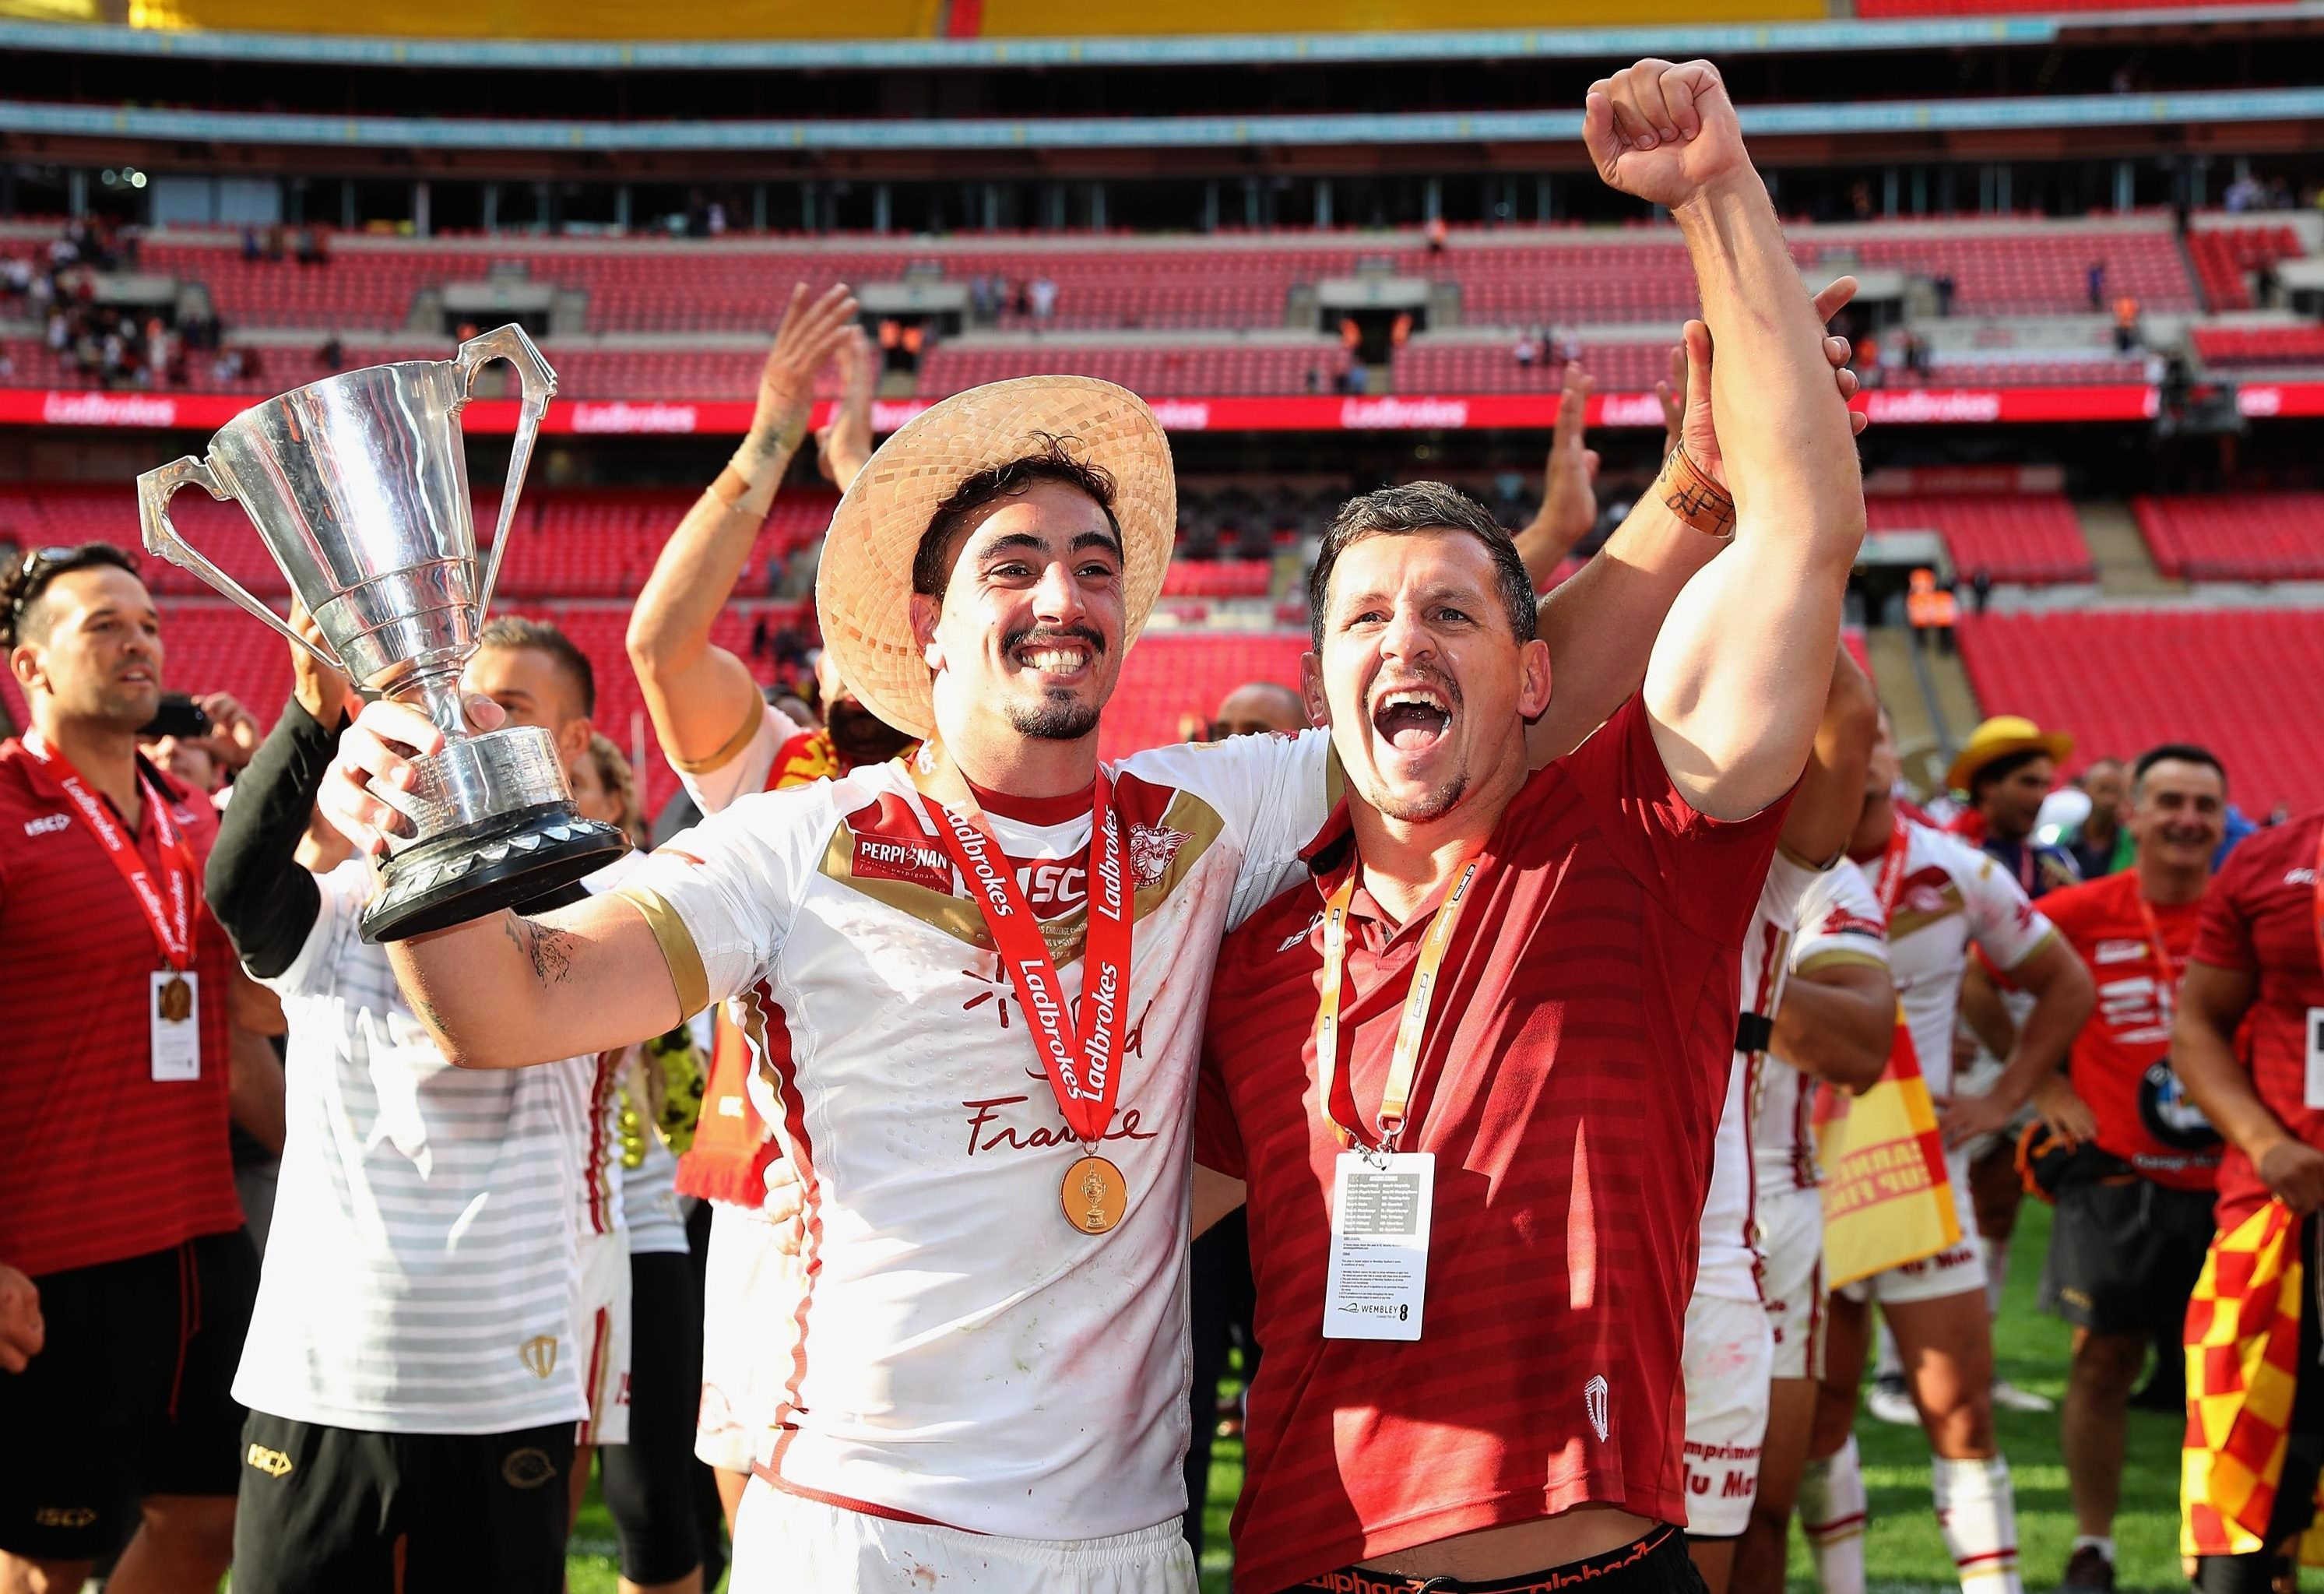 Tony Gigot and Greg Bird celebrate a first trophy for the club